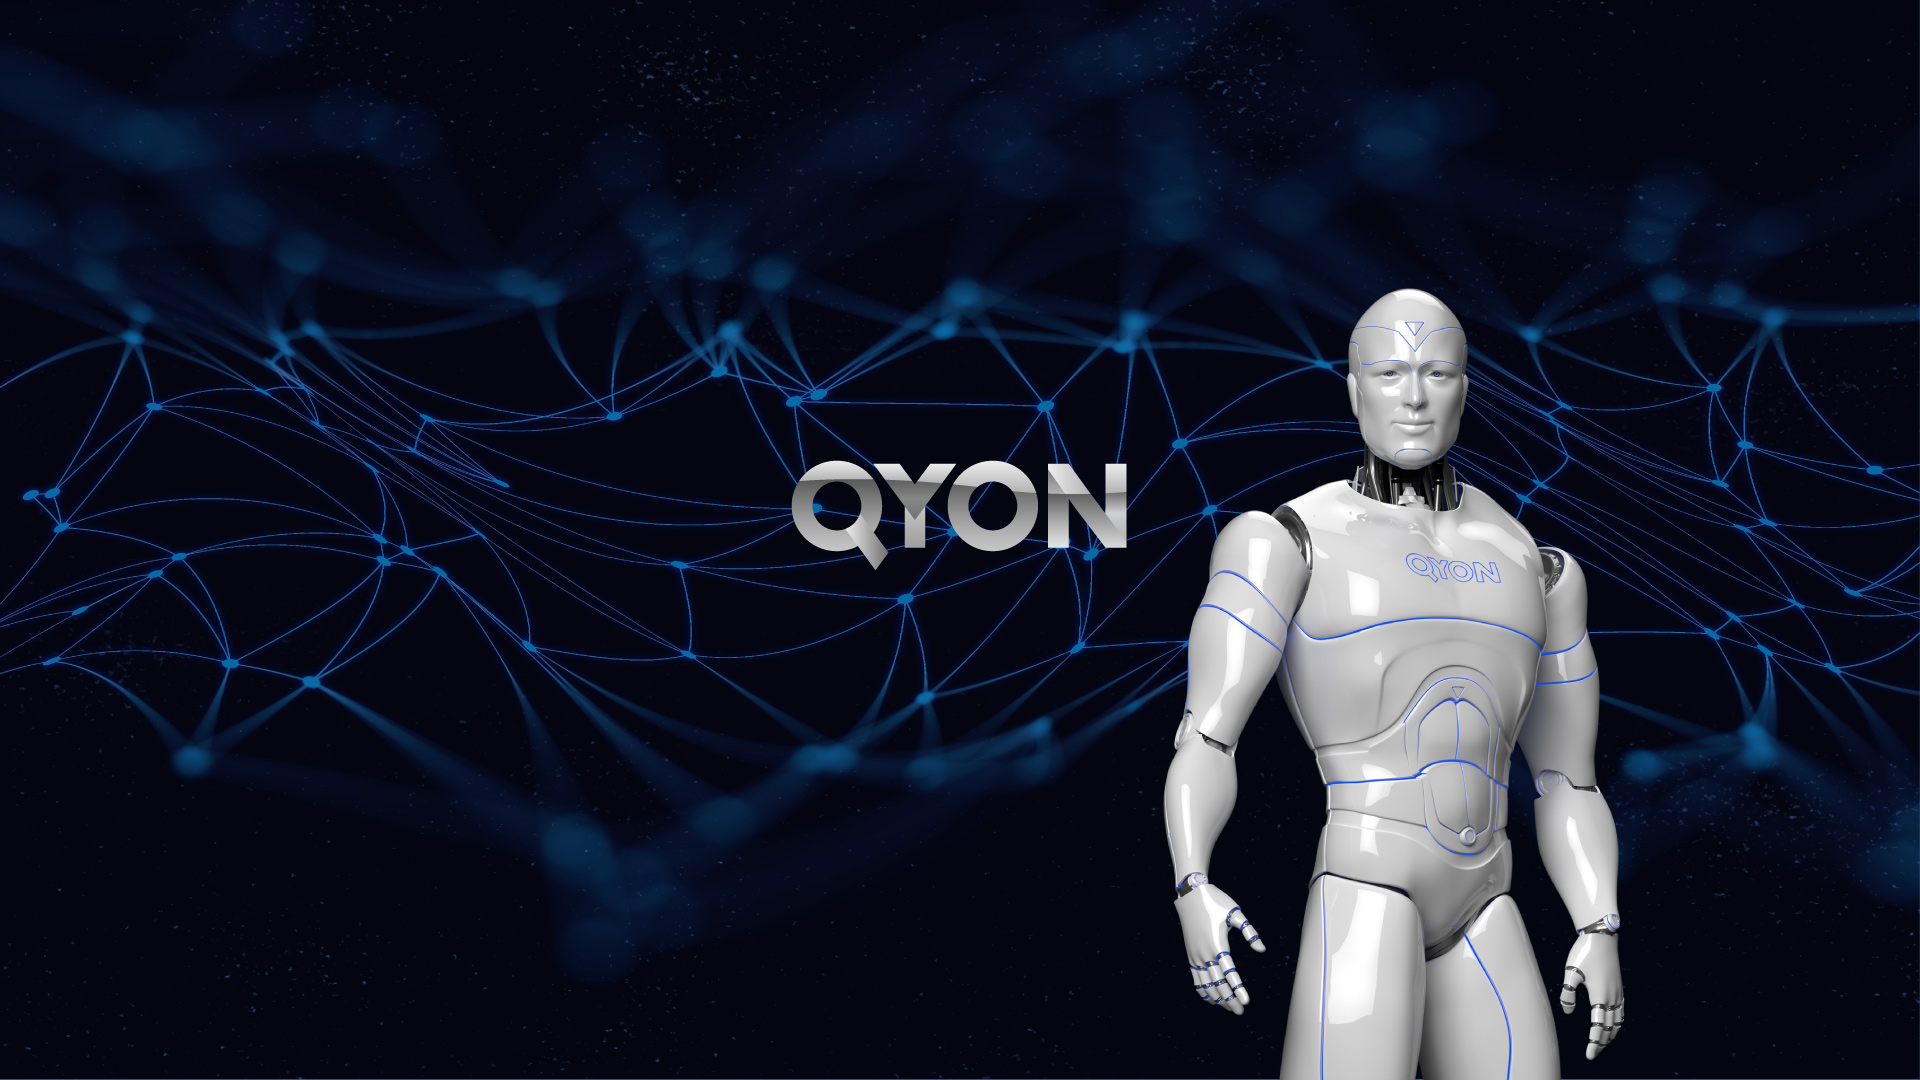 Wallpapers-QYON-1920x1080px_LO2